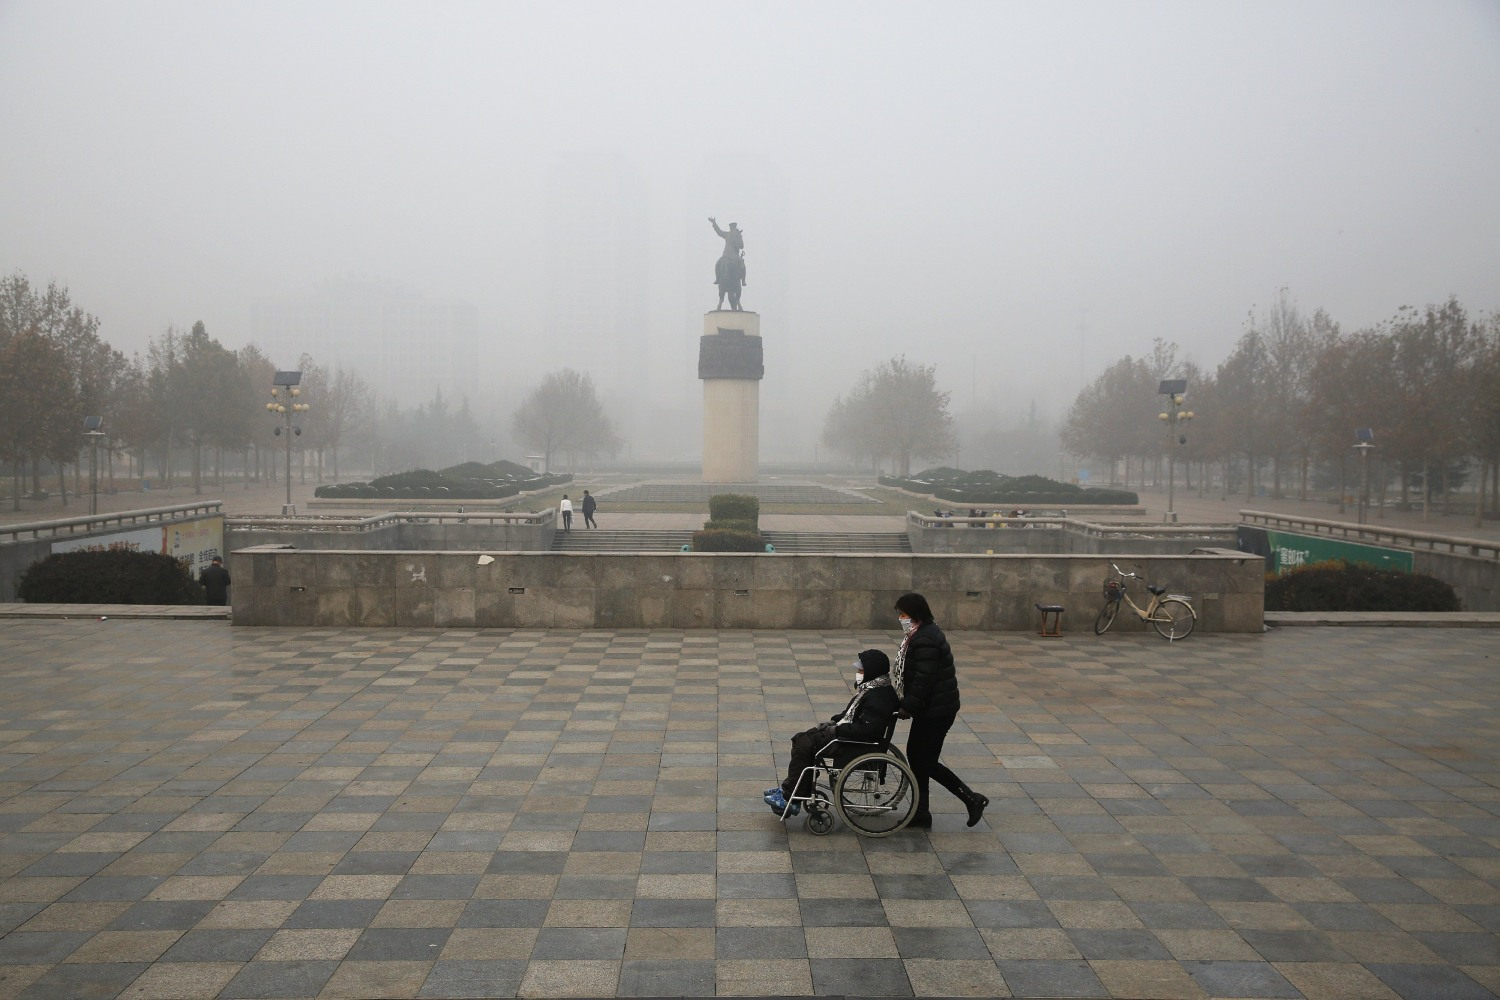 Baoding China  city pictures gallery : ... wheelchair in smoggy Baoding, China, on Monday. DAMIR SAGOLJ / Reuters